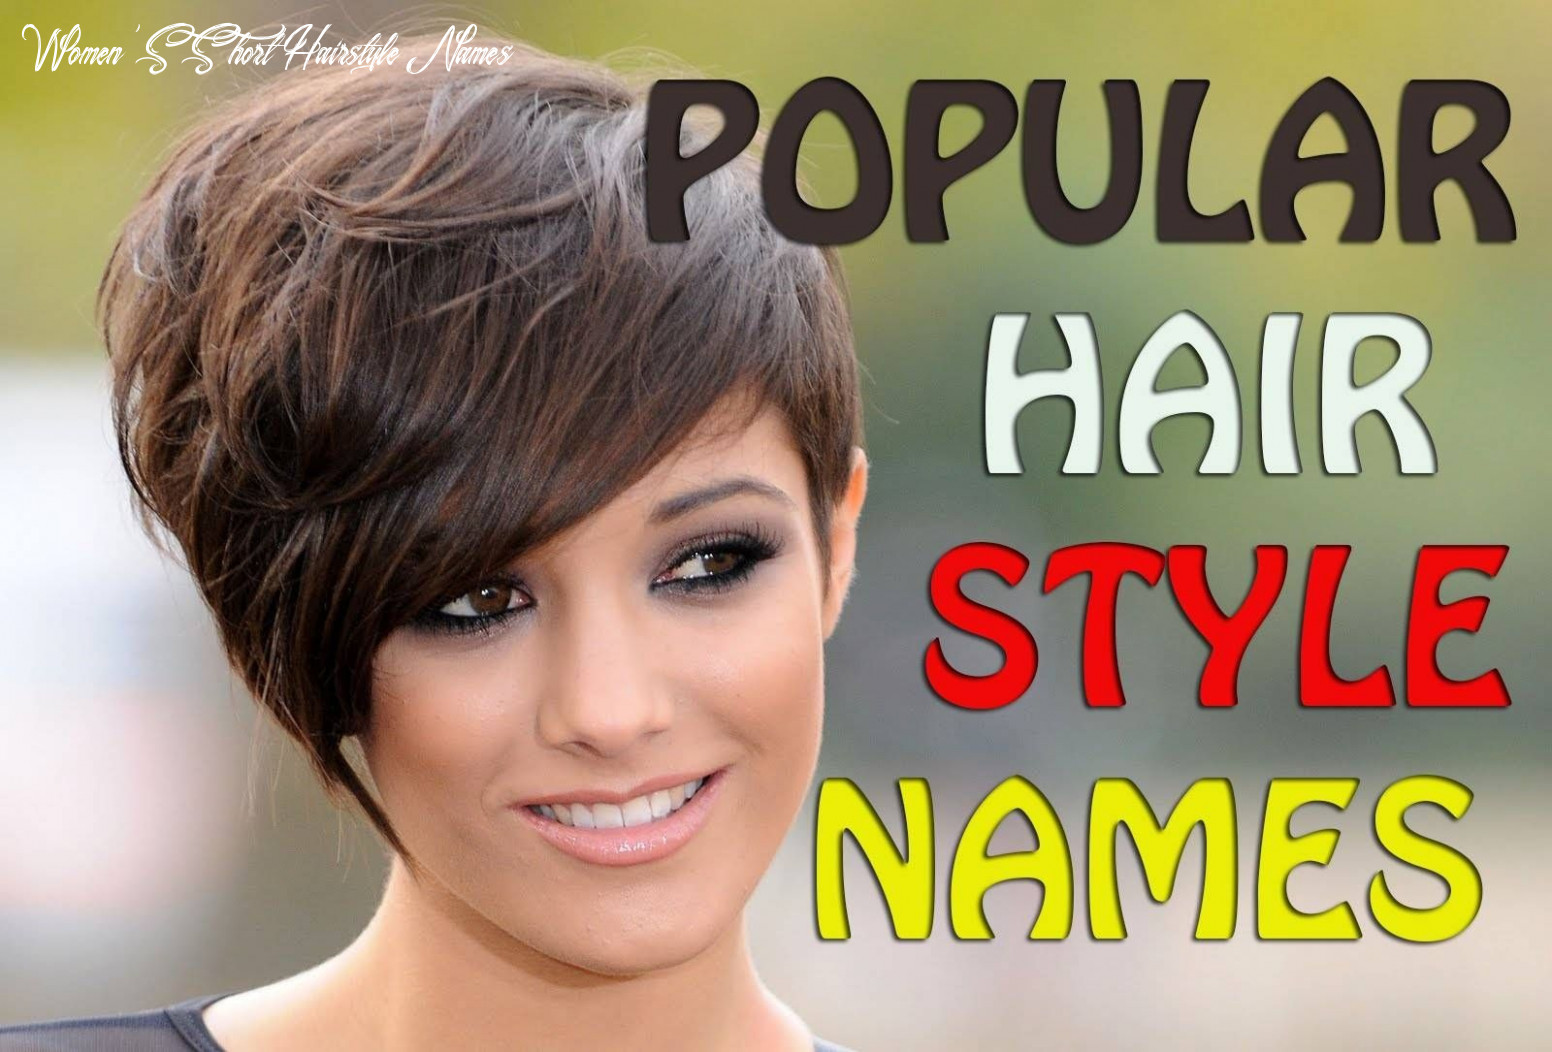 Top different popular | hairstyle names, womens hairstyles, short